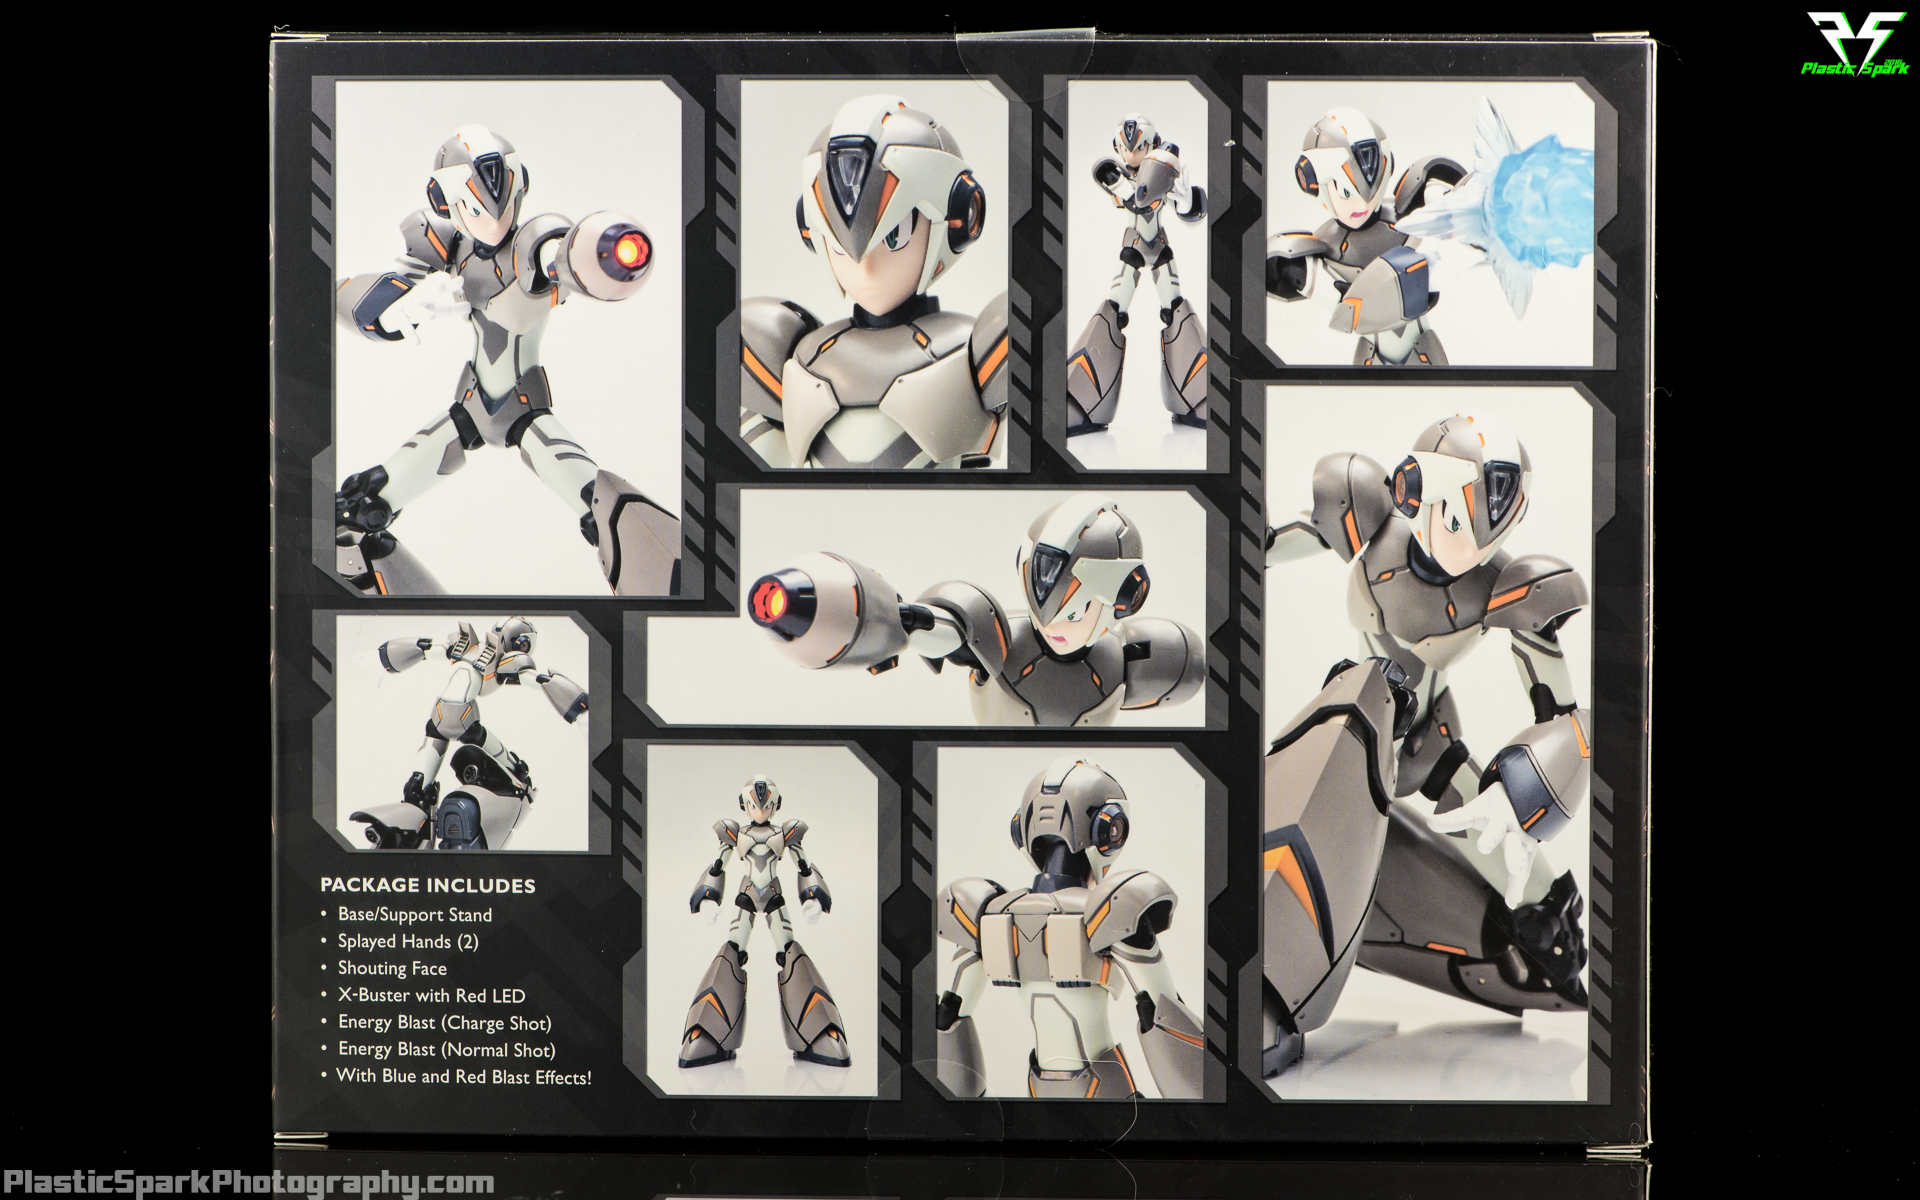 Truforce-Megaman-X-Kickstarter-Variant-Packaging-(2-of-6).png